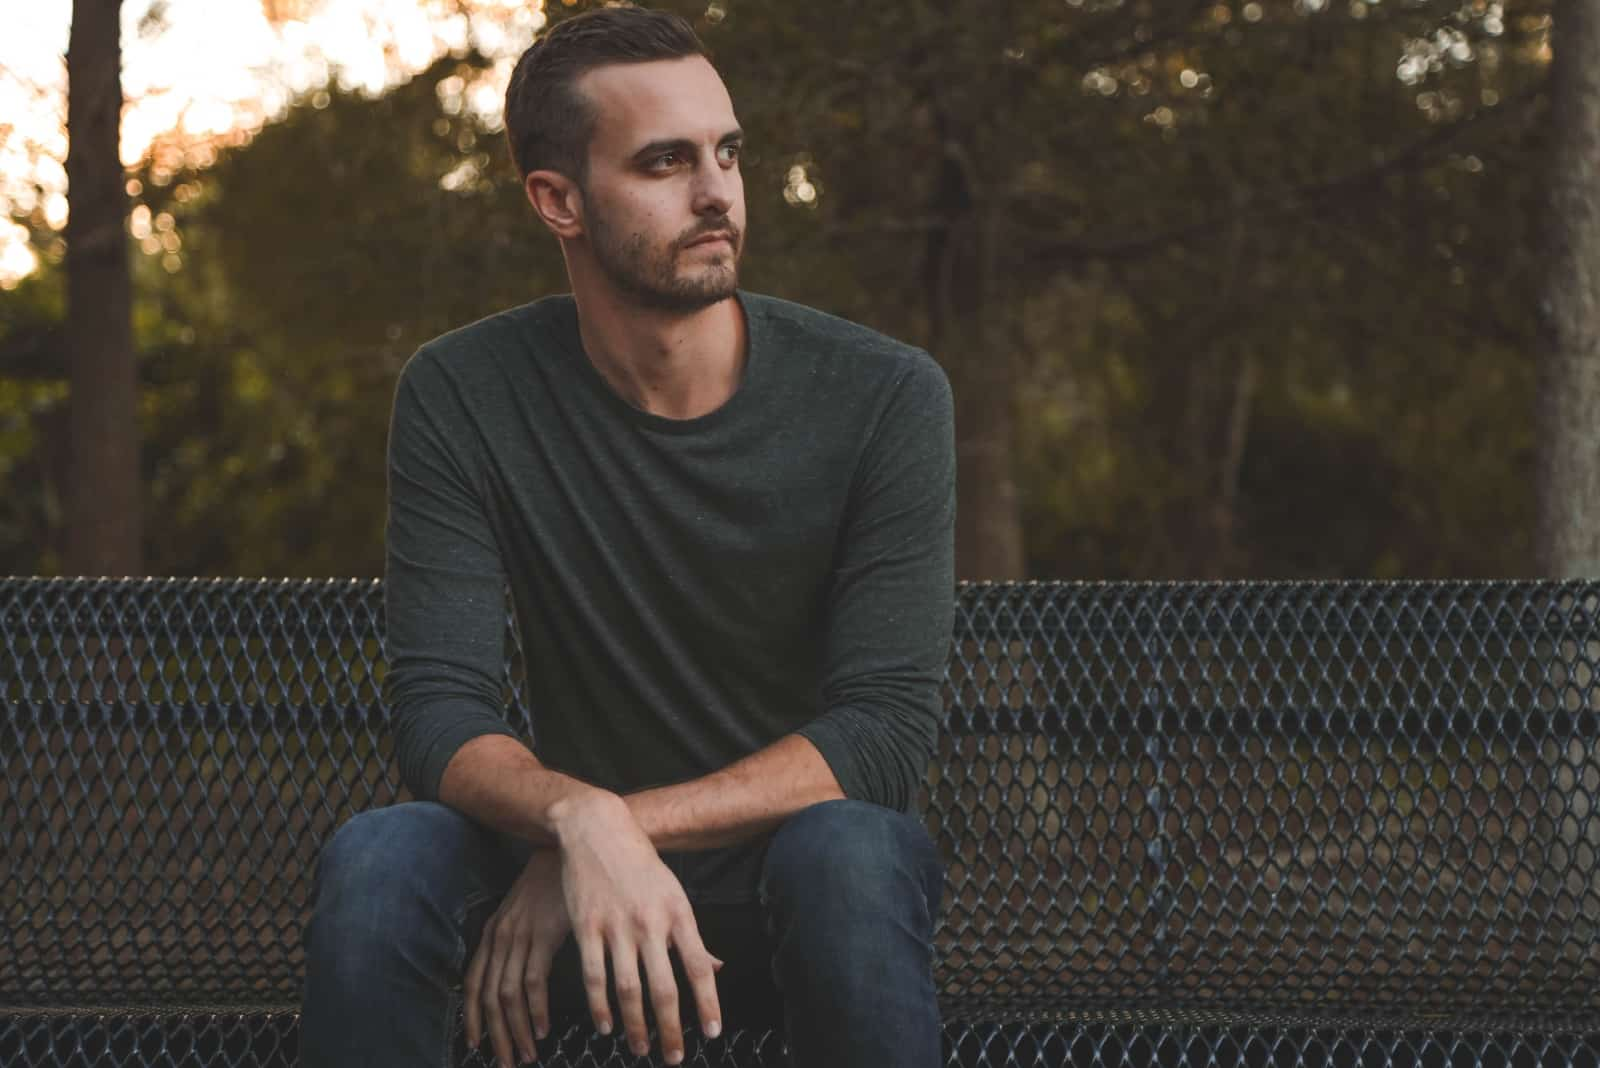 serious man in gray shirt sitting on bench